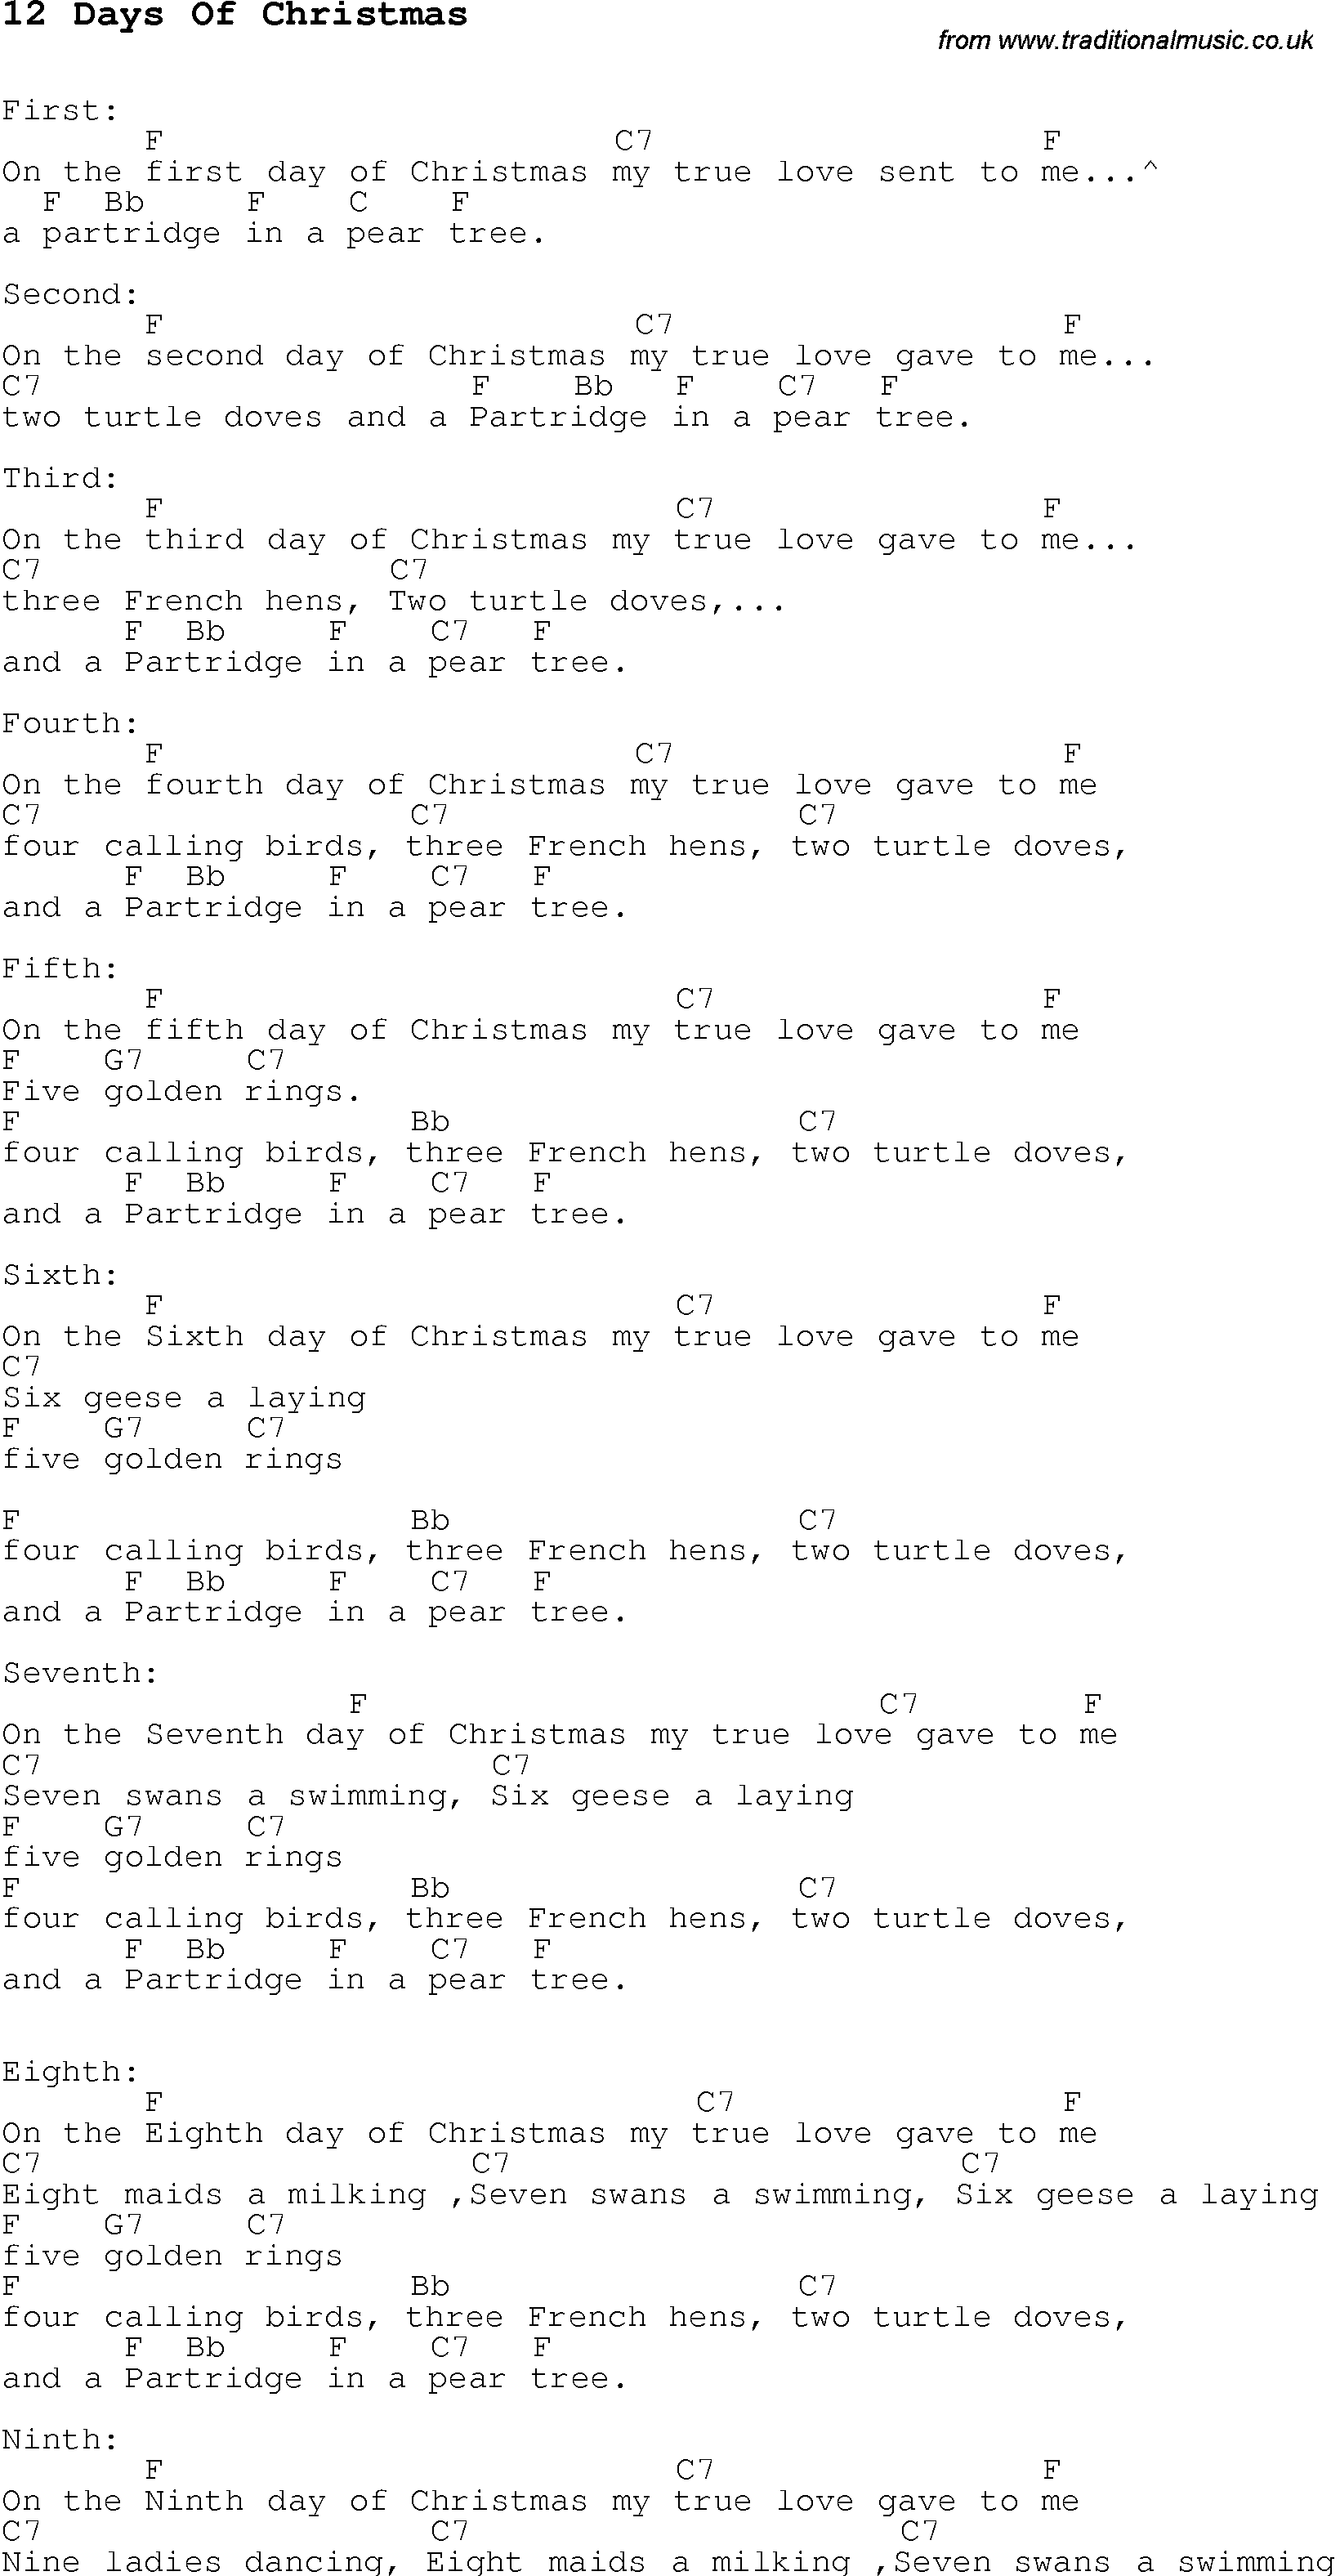 christmas songs and carols lyrics with chords for guitar banjo for 12 days of christmas - When Are The Twelve Days Of Christmas